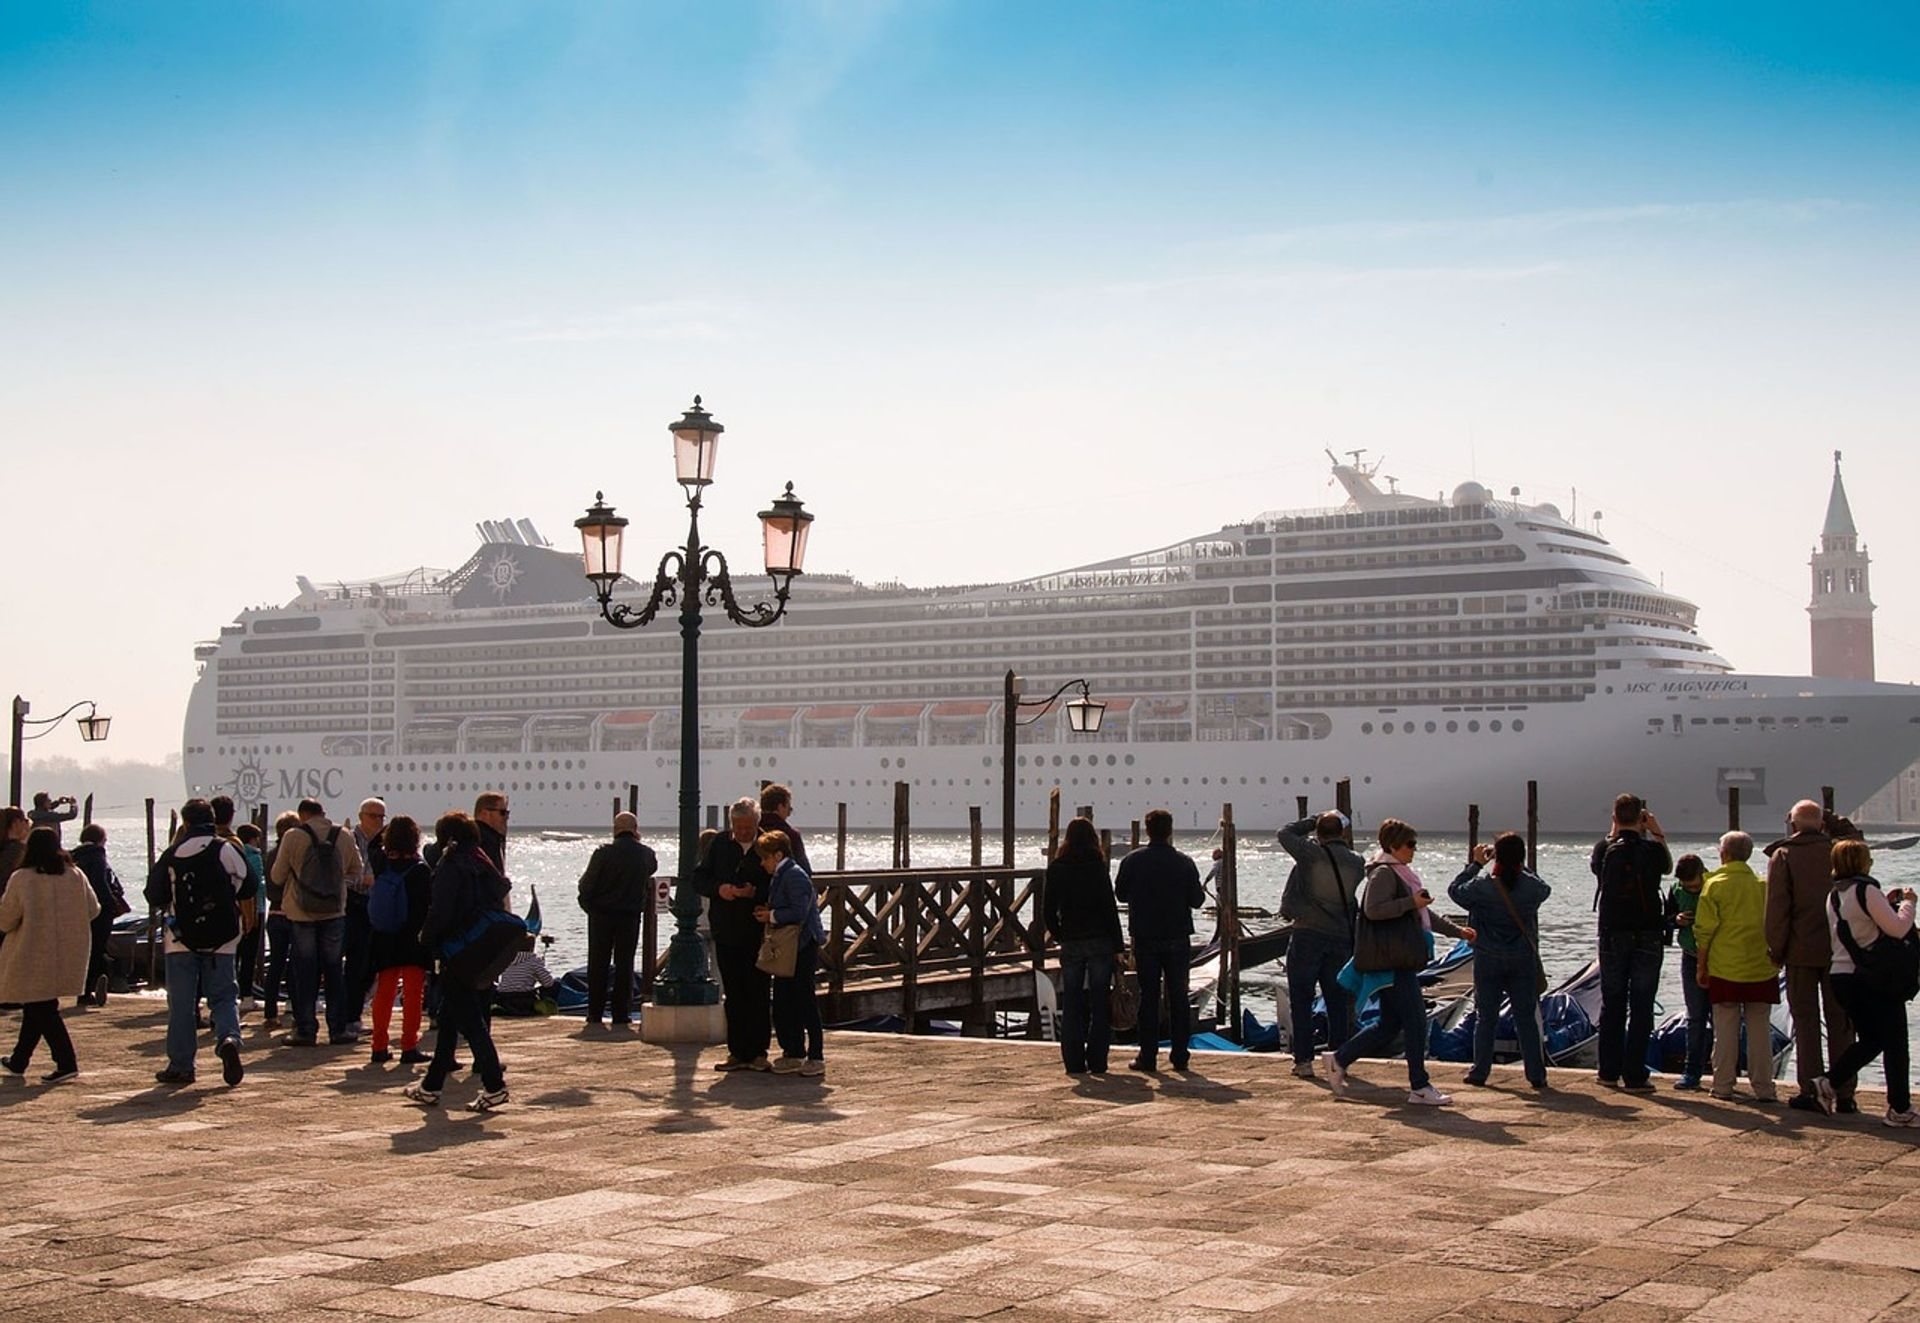 Cruise ships in Venice bring large crowds of tourists and contribute to pollution in the lagoon city © Pixabay